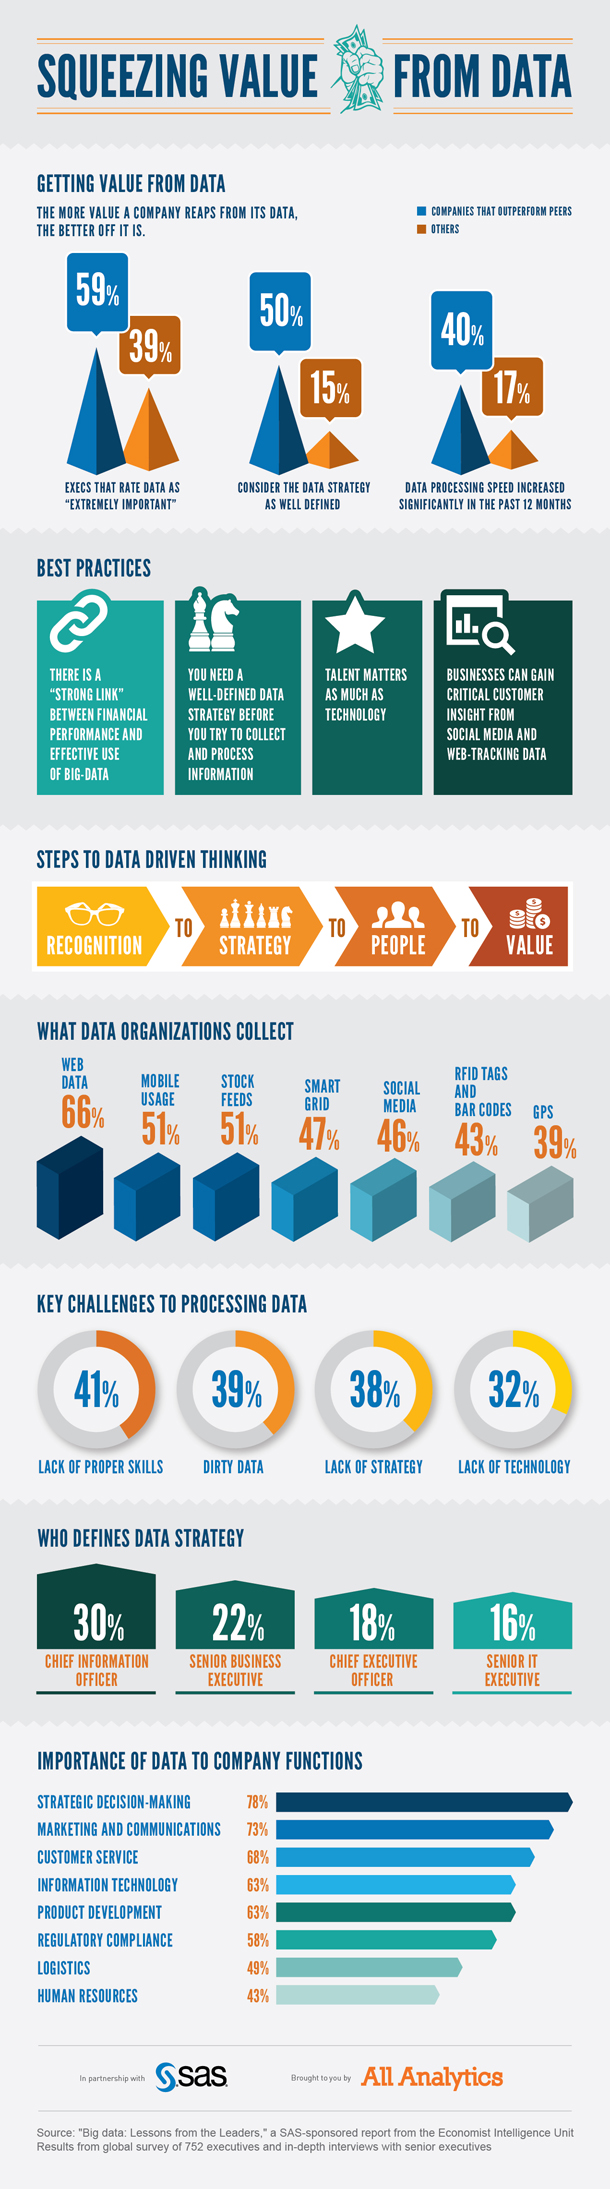 Squeezing Value From Data Infographic (credit:  SAS, All Analytics)